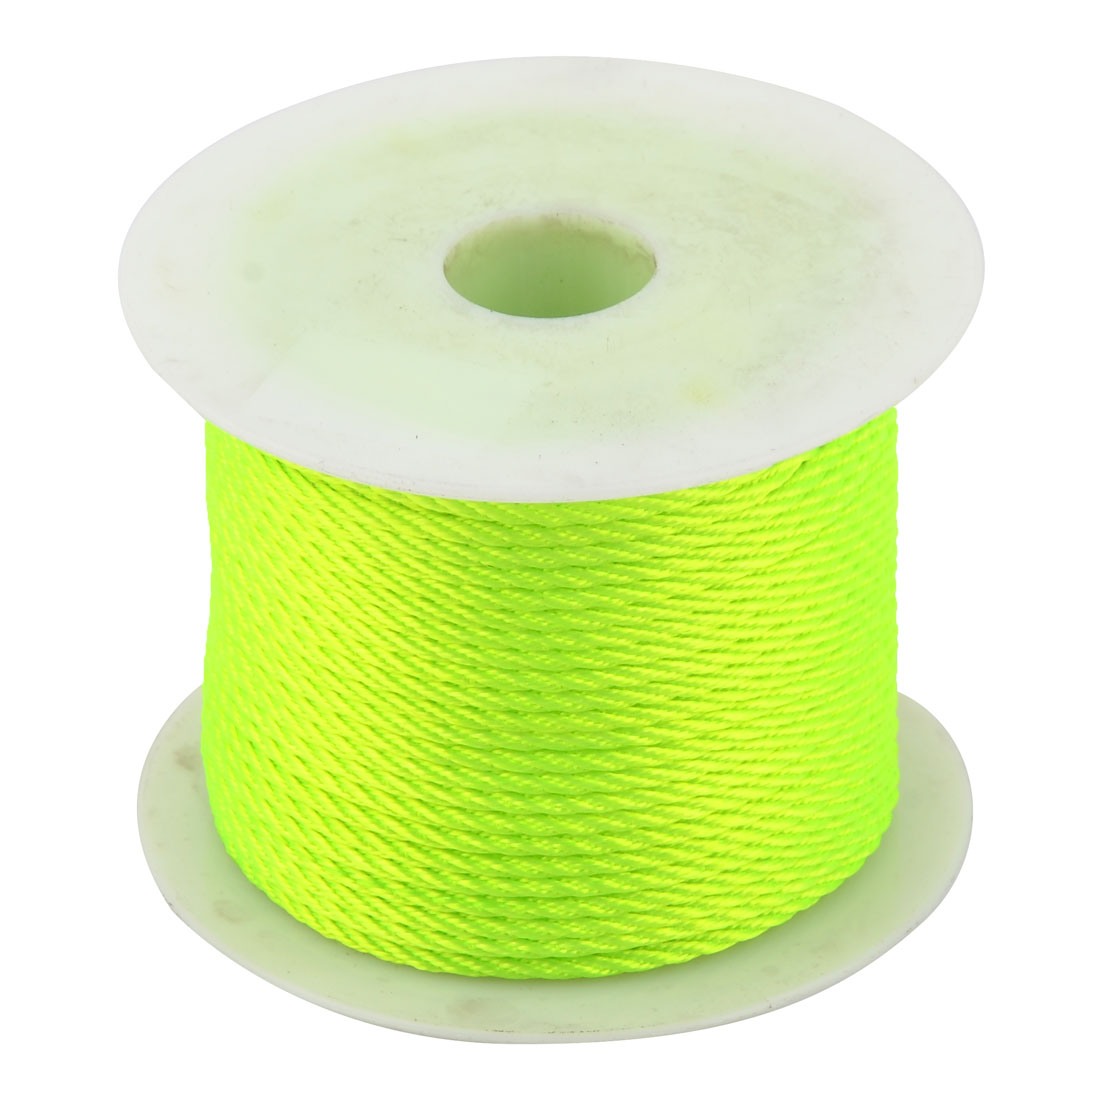 Nylon Chinese Knot Braided Bracelet Cord String Rope Fluorescent Green 39 Yards